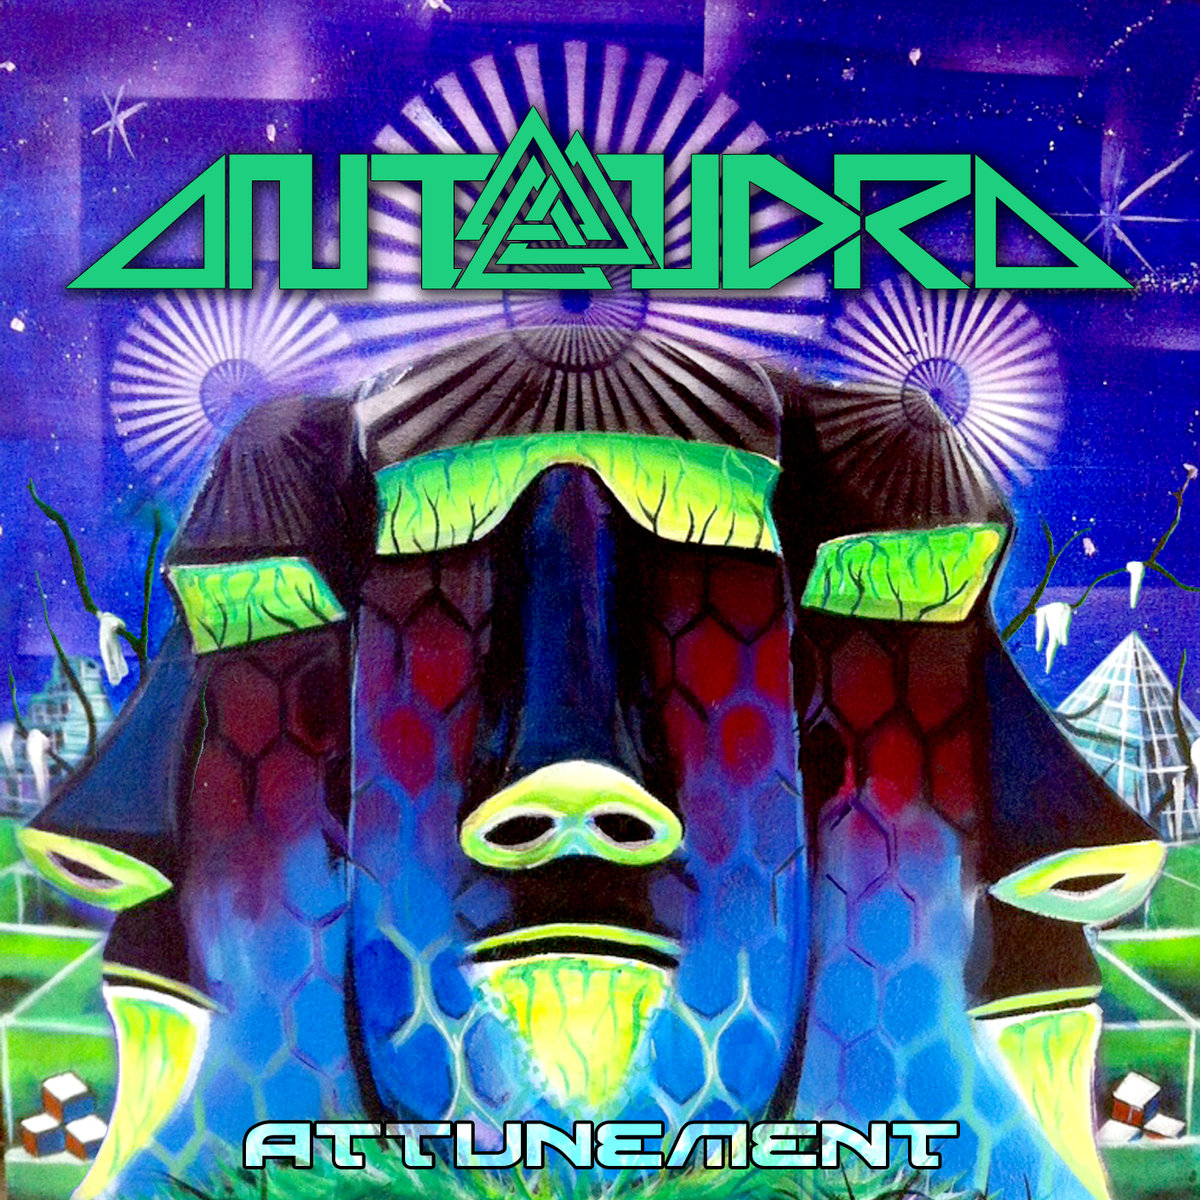 Antandra - You Are the Reason @ 'Attunement EP' album (ambient, chill dub)